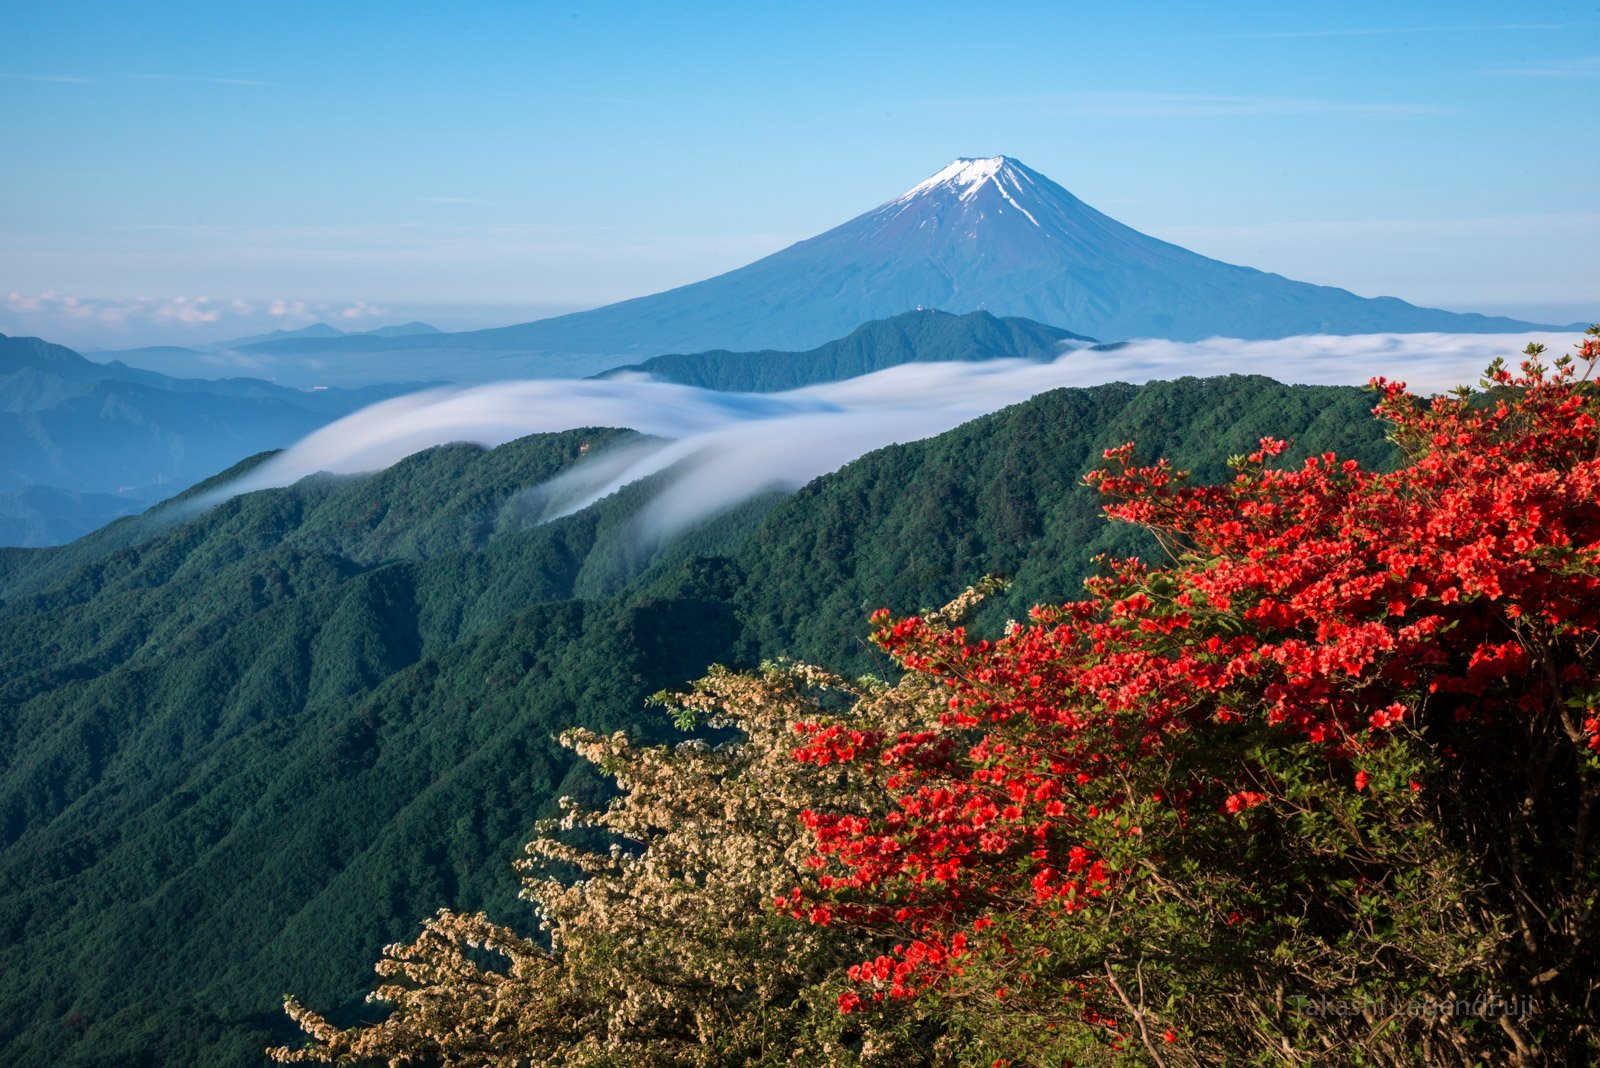 Fuji,mountain,Japan,azalea,flower,cloud,blue,red,white,, Takashi